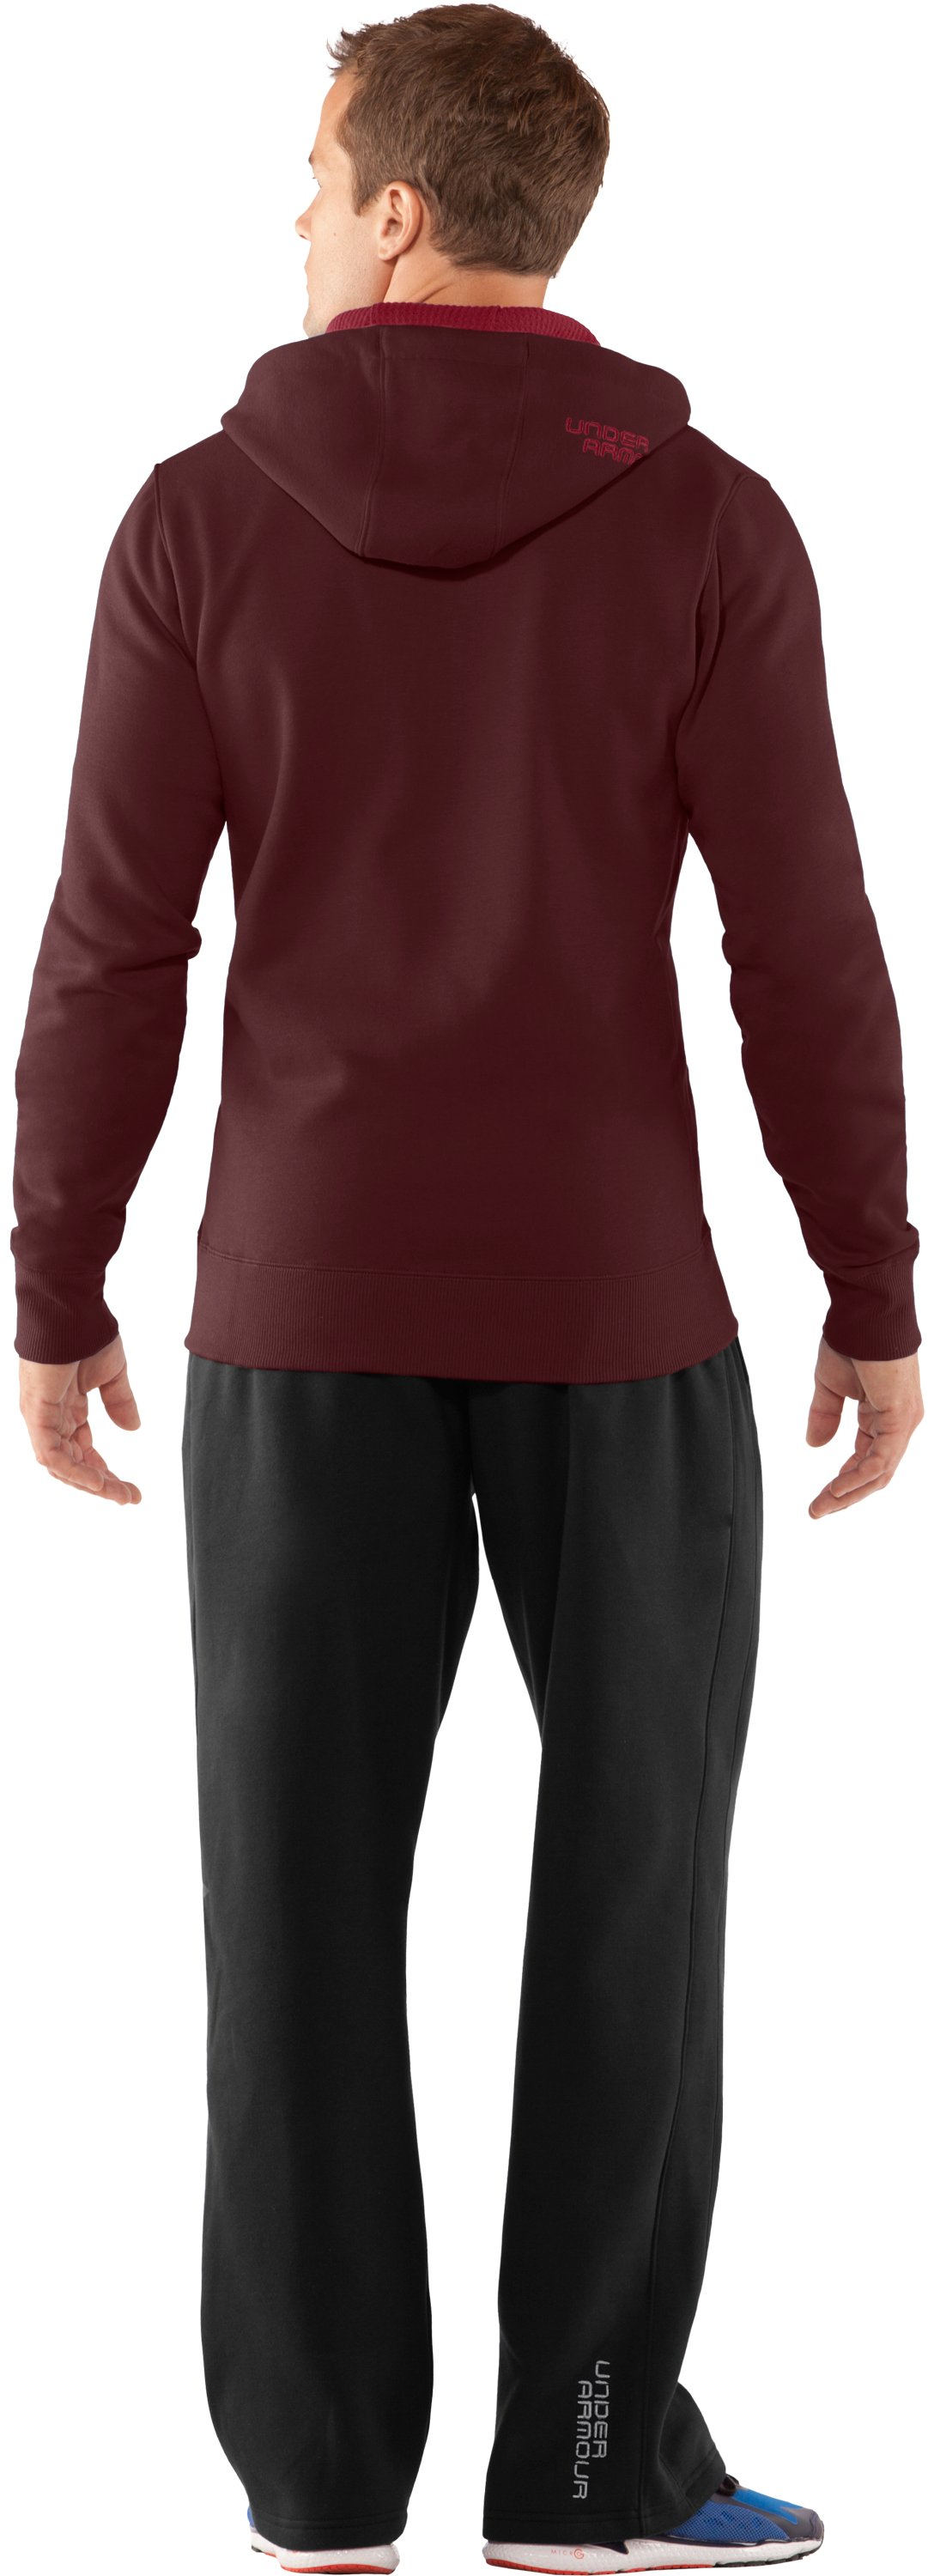 Men's Charged Cotton® Storm Full Zip Hoodie, Ox Blood, Back